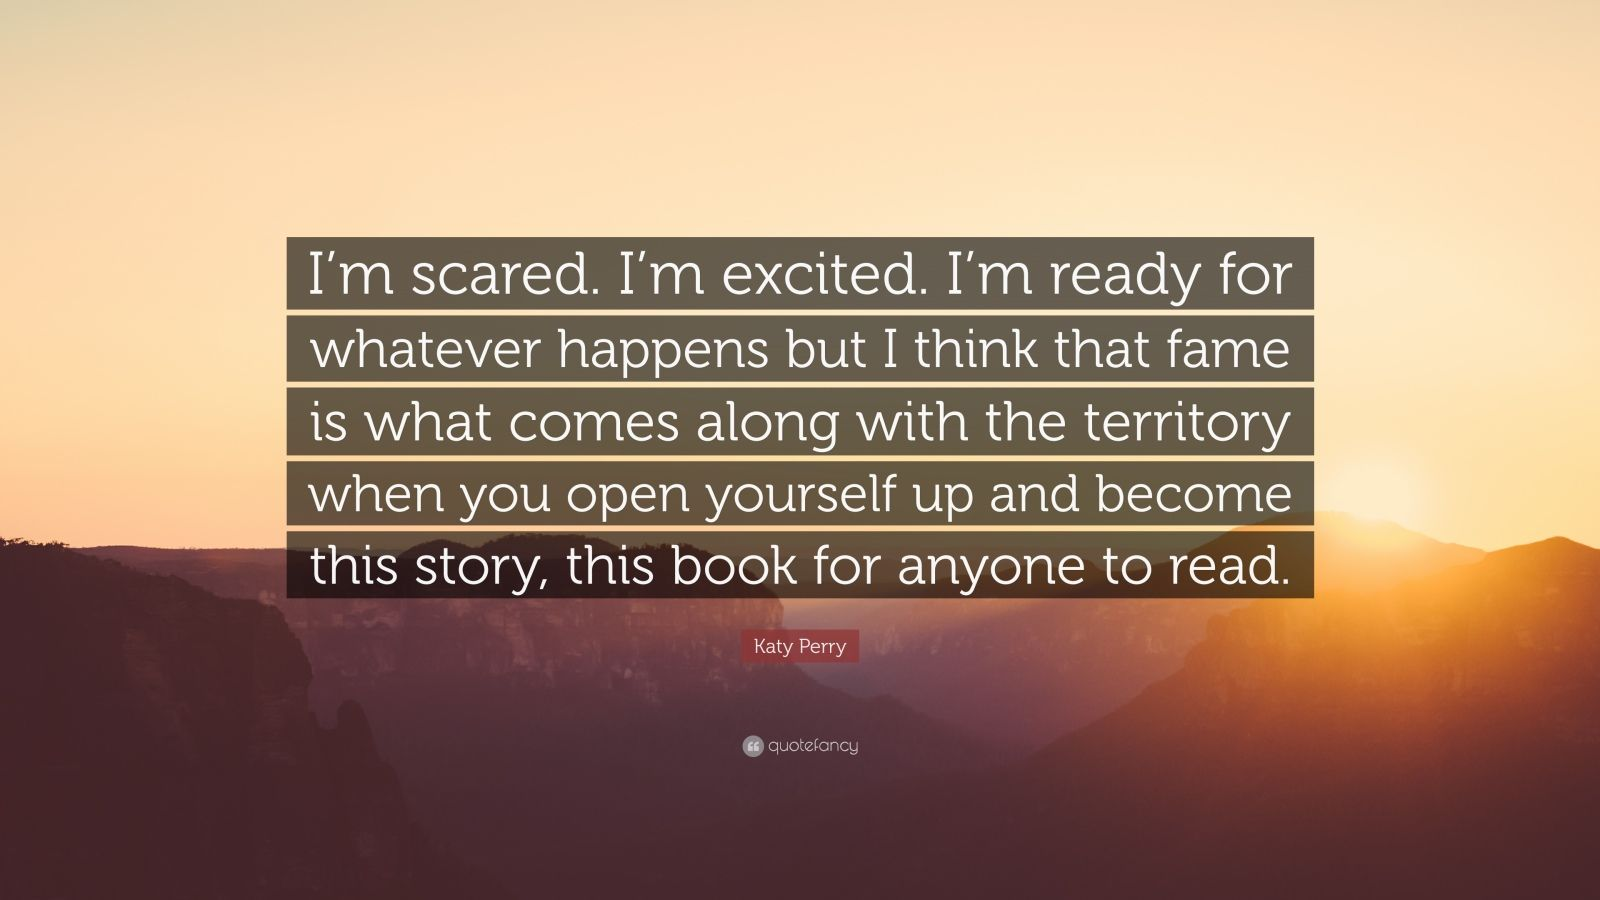 """Katy Perry Quote: """"I'm scared. I'm excited. I'm ready for whatever happens but I think that fame is what comes along with the territory when you open yourself up and become this story, this book for anyone to read."""""""